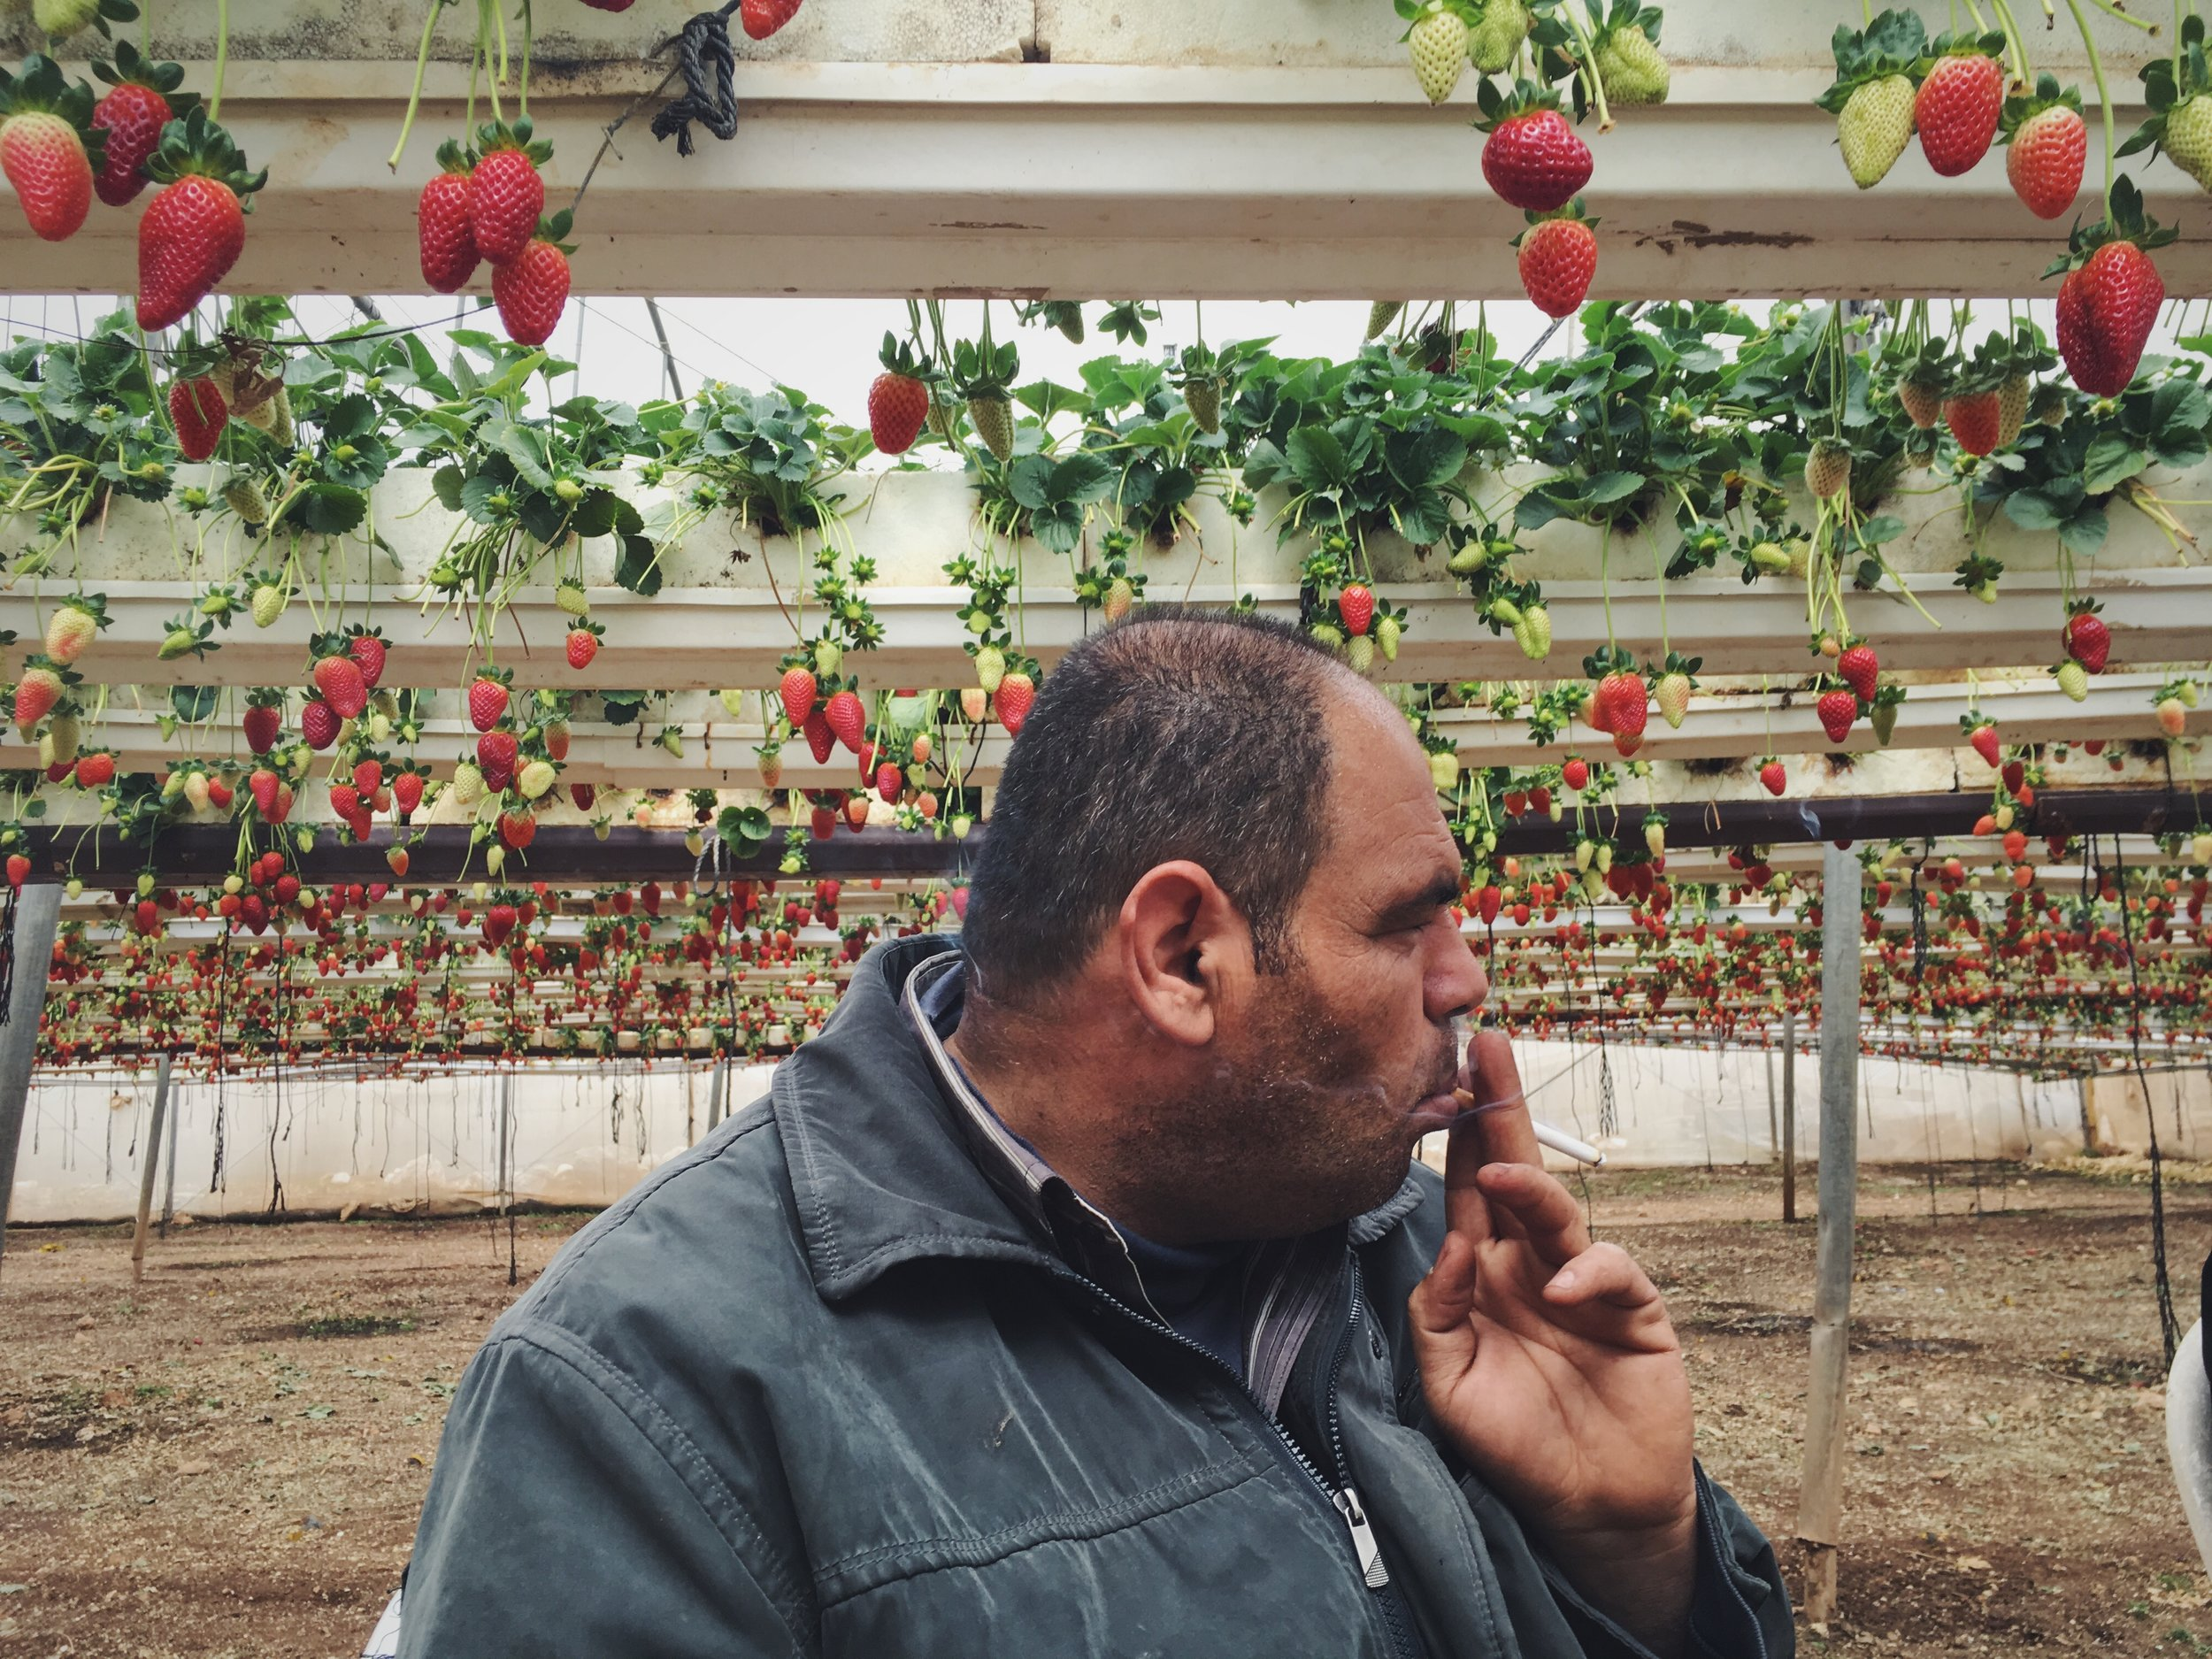 """Omran Shadid, a strawberry farmer near the northern West Bank town of Jenin, takes a cigarette break. Strawberries came to the West Bank in 2009 and Omran invested in them because """"The appearance is attractive,"""" he says. """"It gives you nice art, good price and a good time."""""""